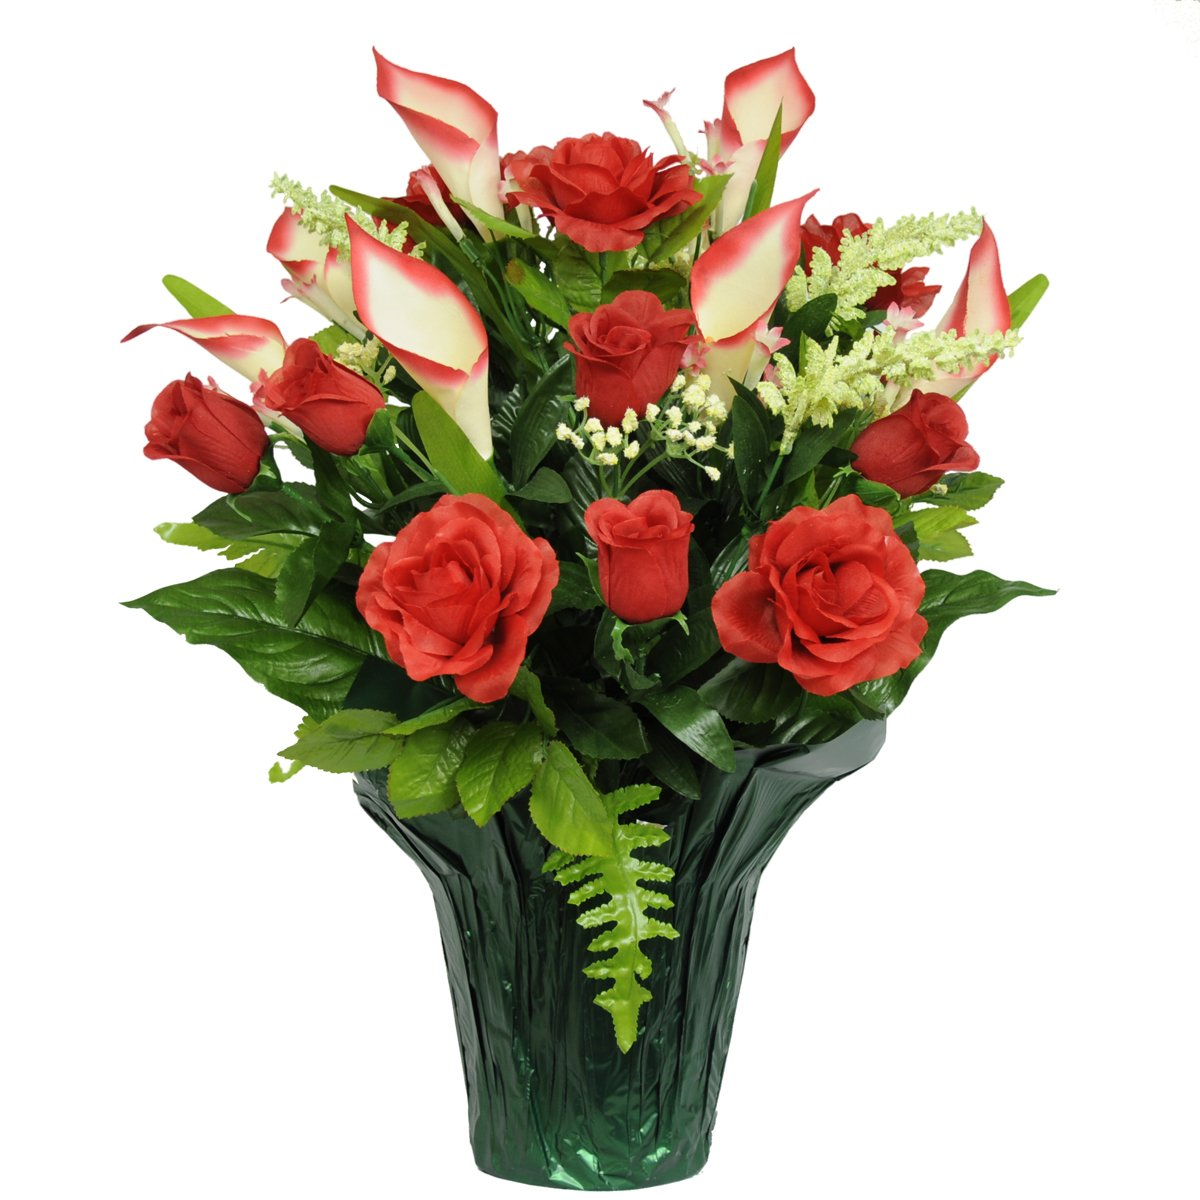 Ruby's Silk Flowers Red Rose and Calla Lily Artificial Weighted Potted Bouquet (PT1140) by Ruby's Silk Flowers